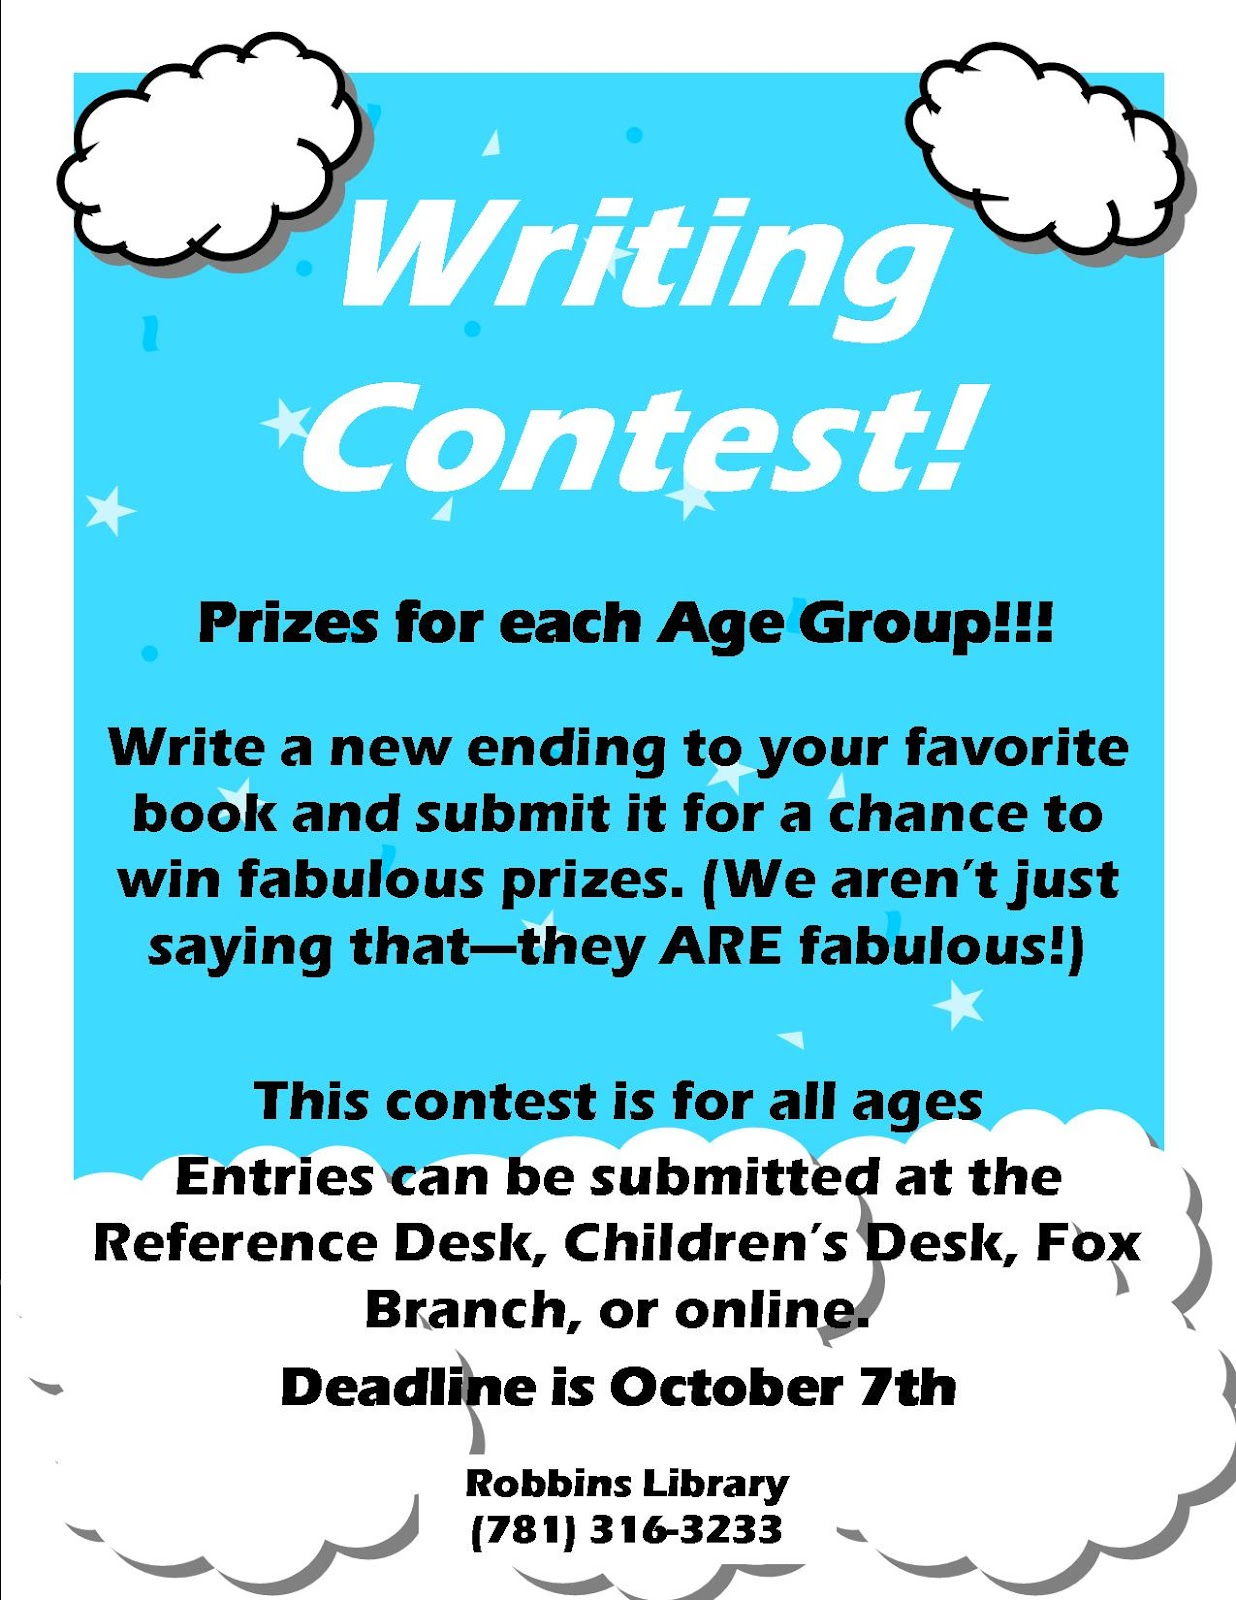 Robbins Library  TEENS Deadline Change On Writing Contest Writing Contest Fault Deadline Change On Writing Contest